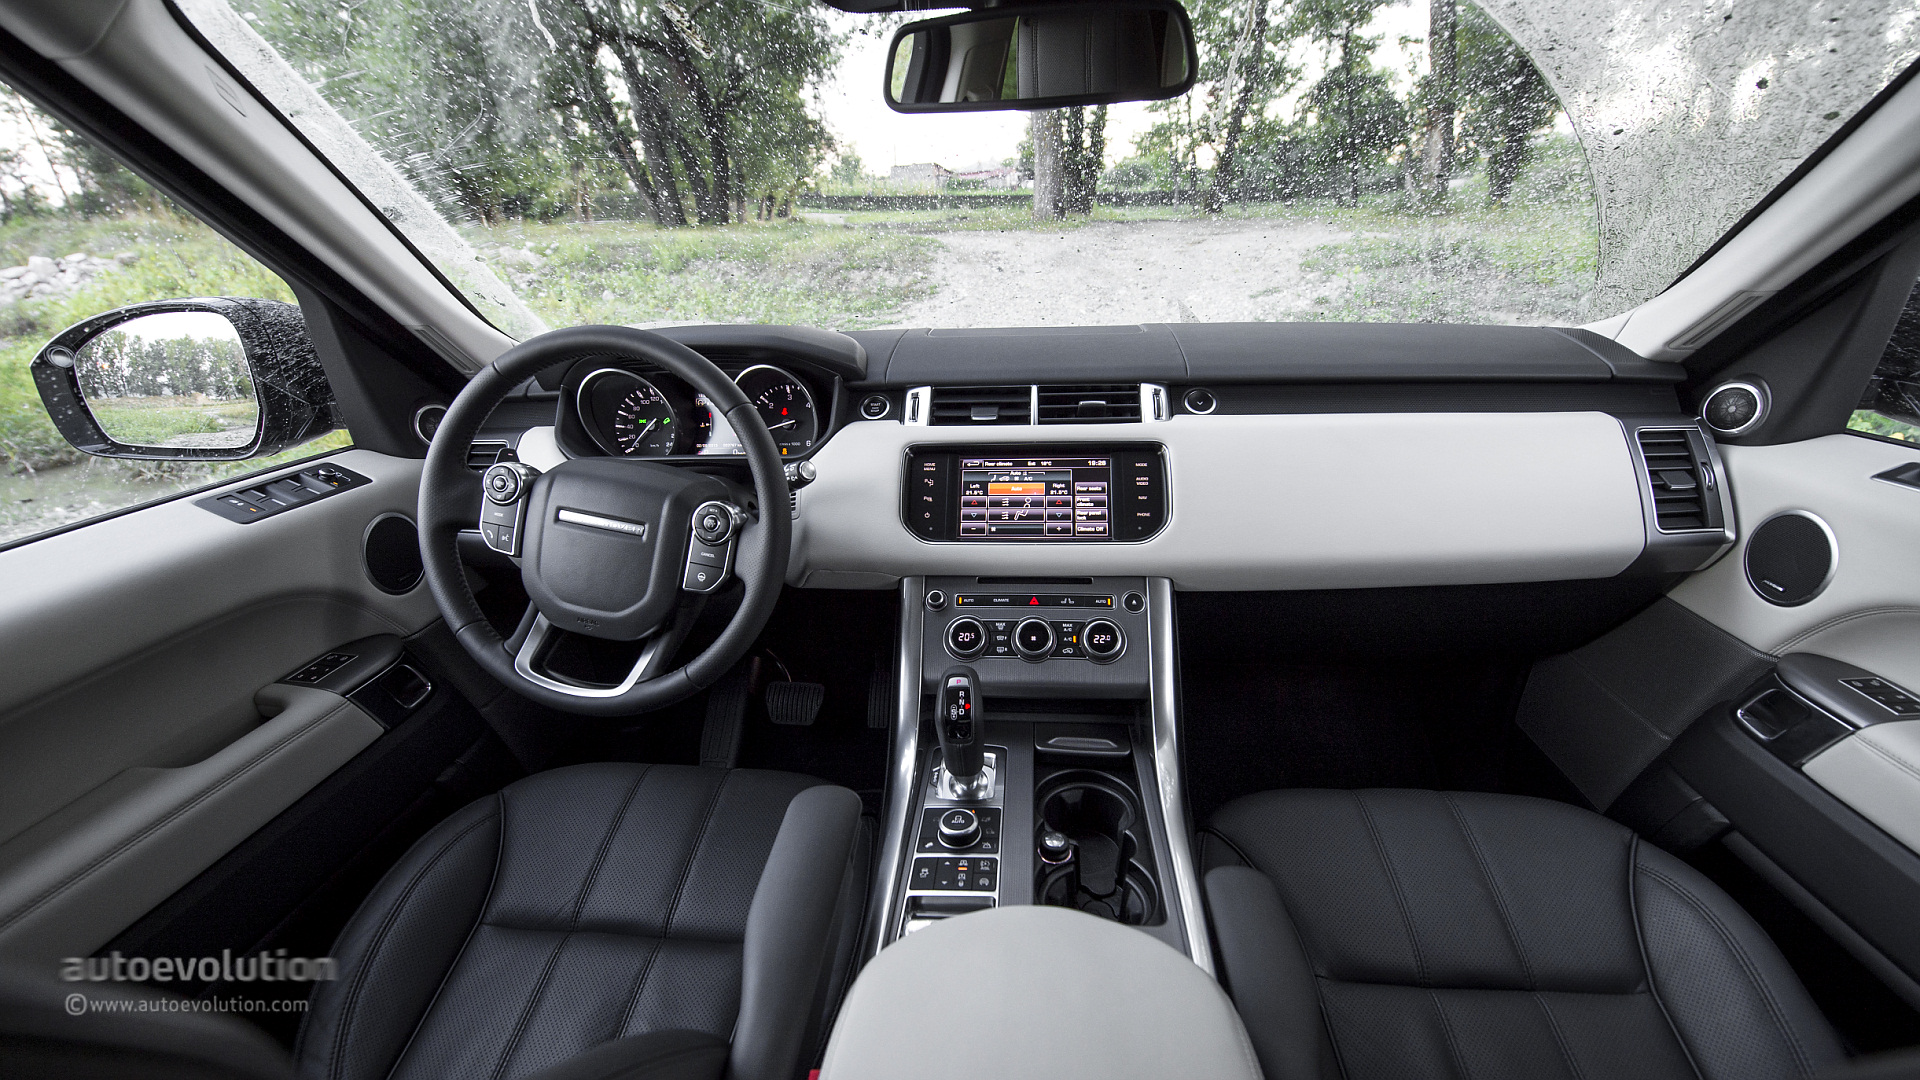 2015 range rover sport supercharged review http www autoevolution com reviews range rover sport supercharged review 2014 html pinterest range rover